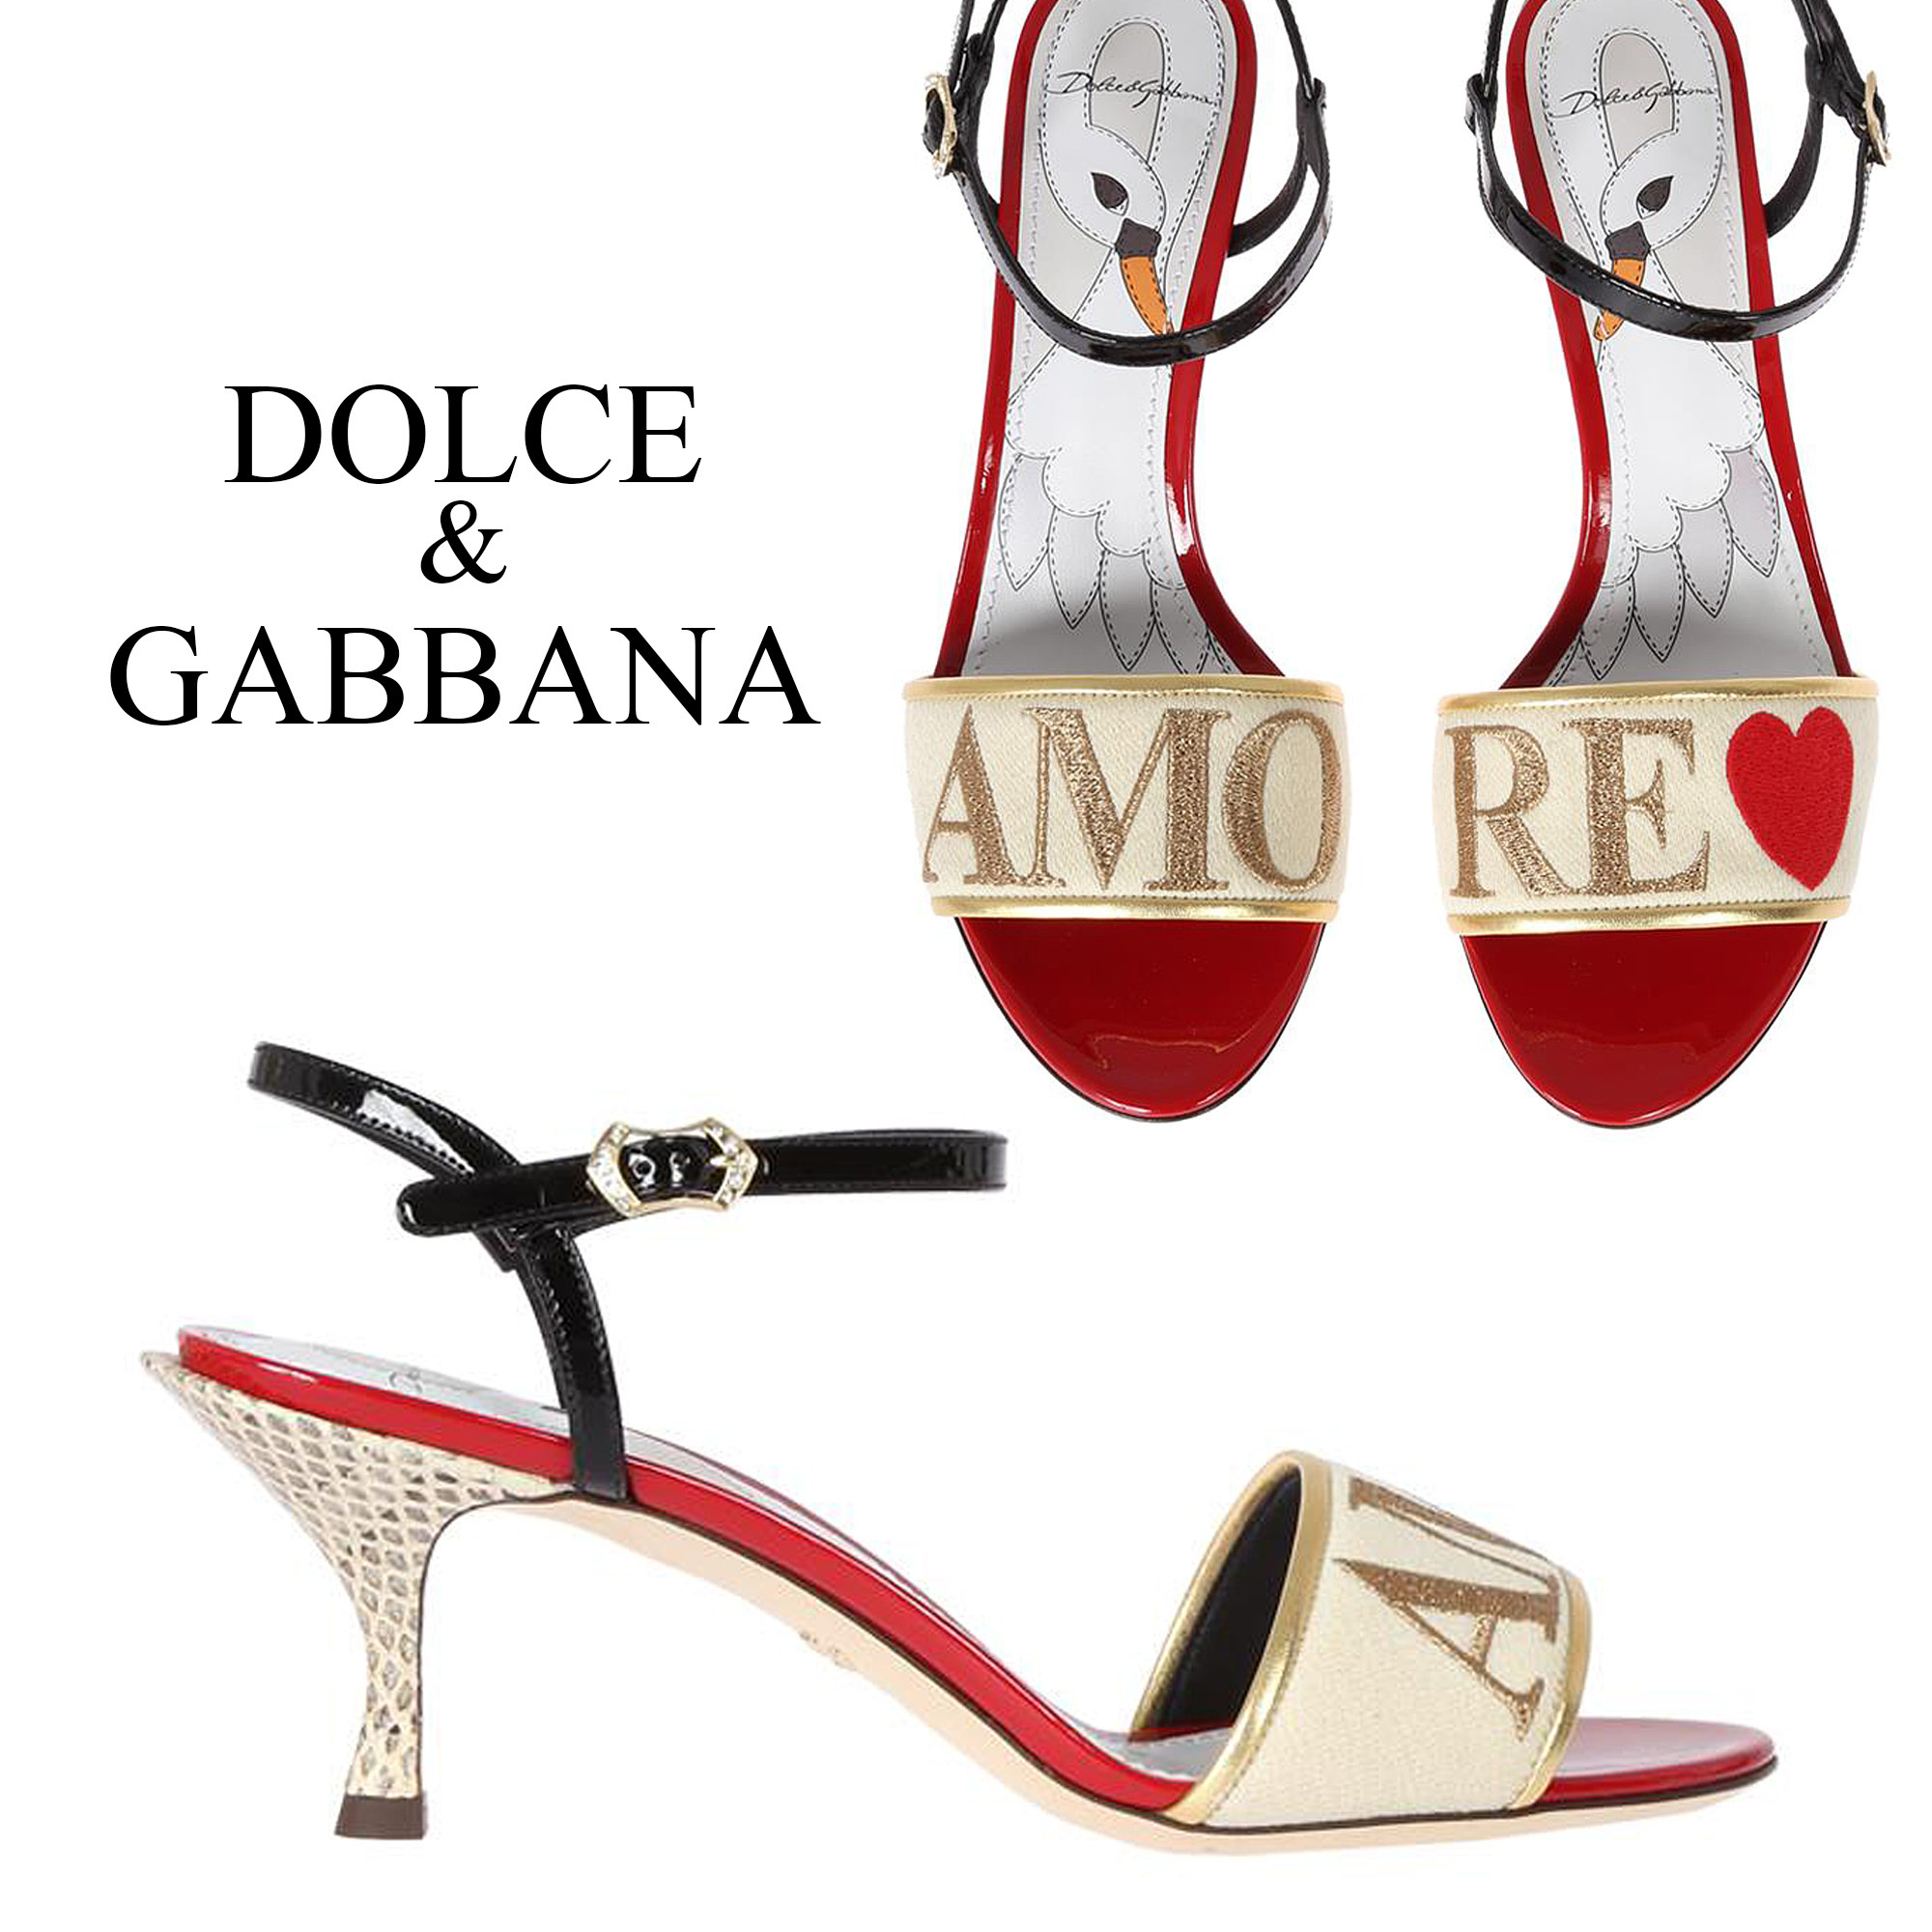 Gabbana Sandals Dolce 2018 Dolce And Sandals And Gabbana fY76gby